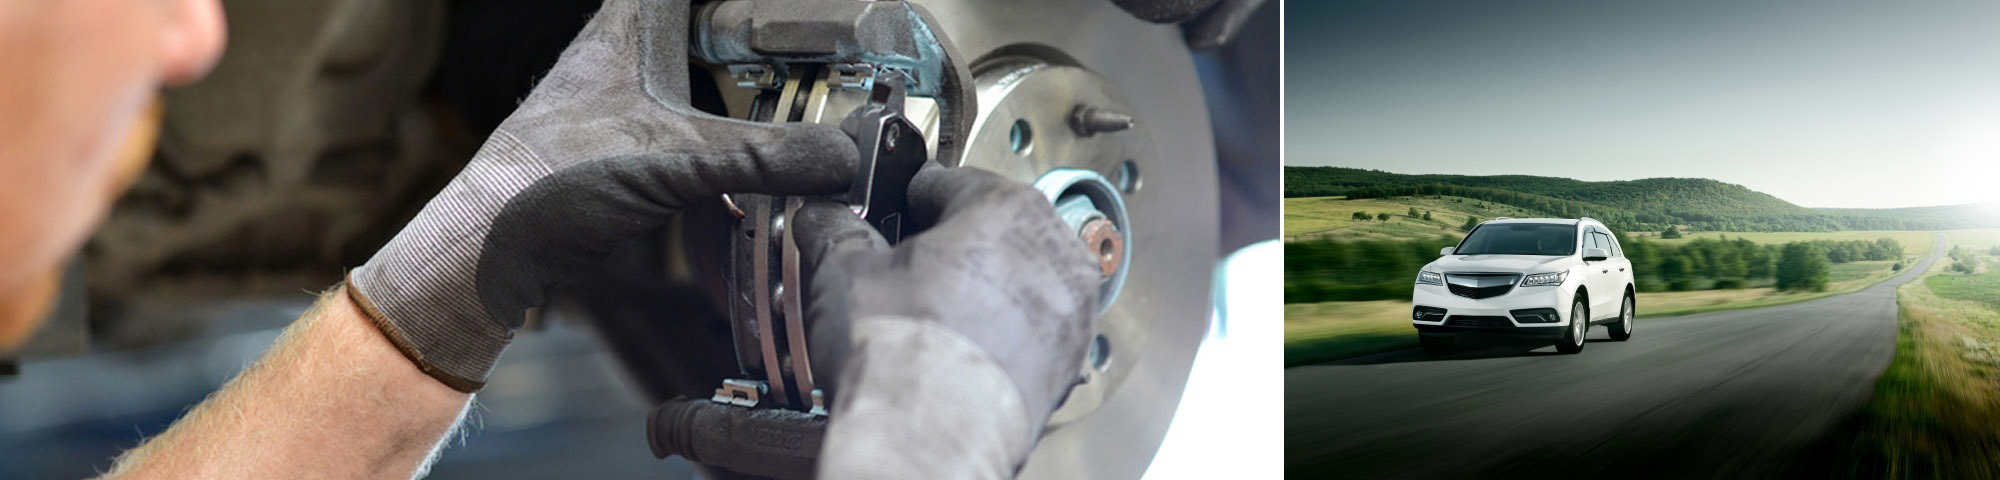 Mechanic Car Servicing Wheel Alignment Auckland Penrose Auto Repair Engine Brakes Service Range Of Automotive Services Offered